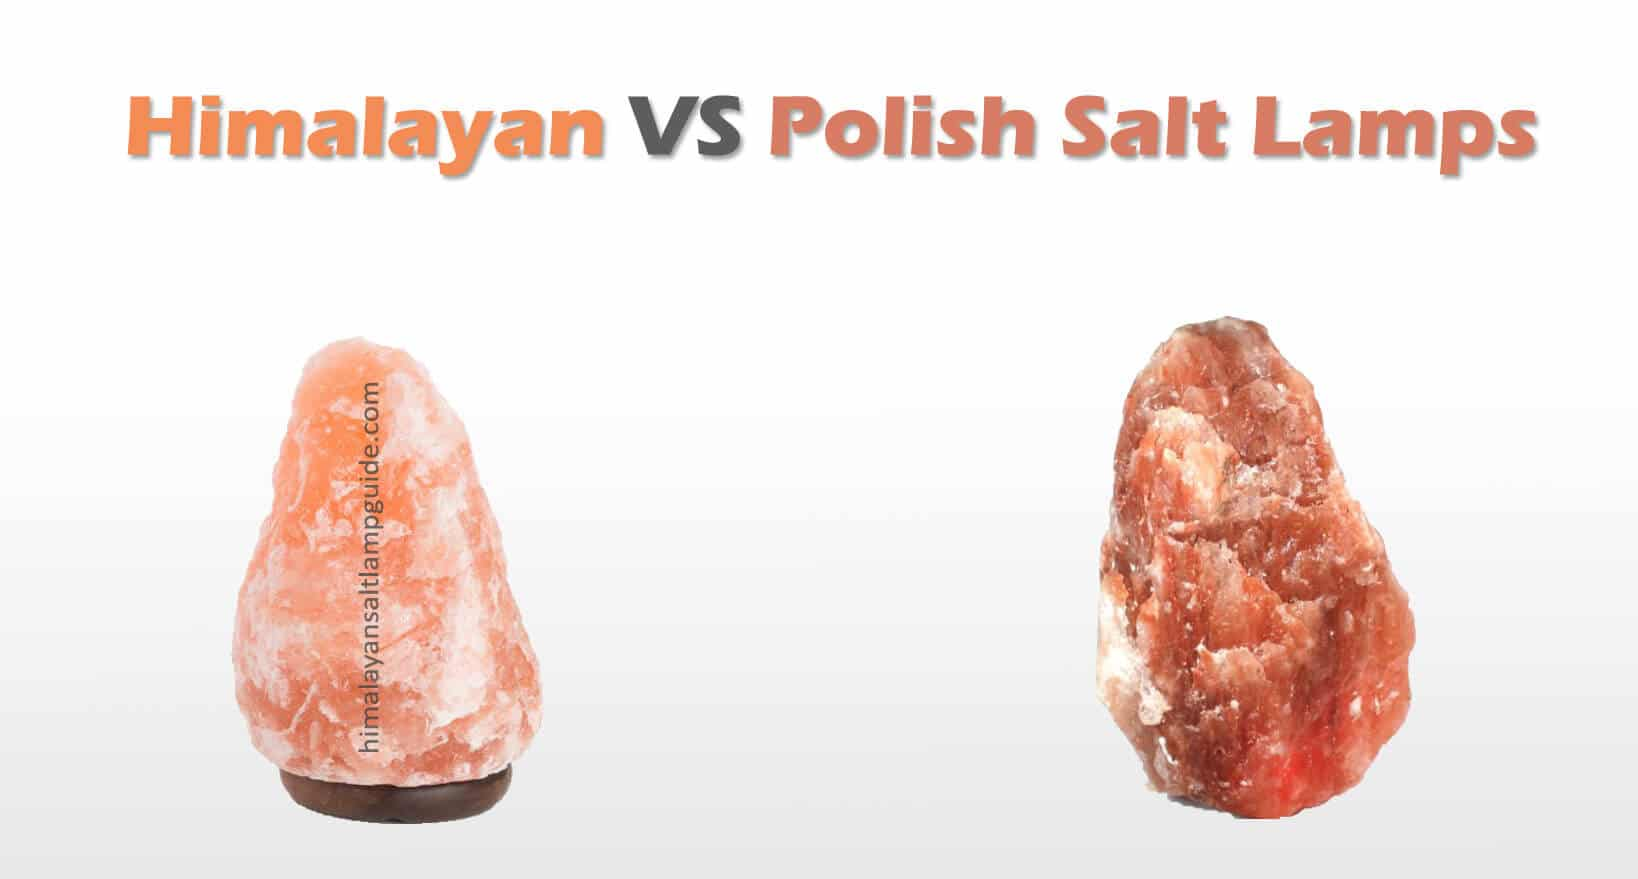 himalayan vs polish salt lamps